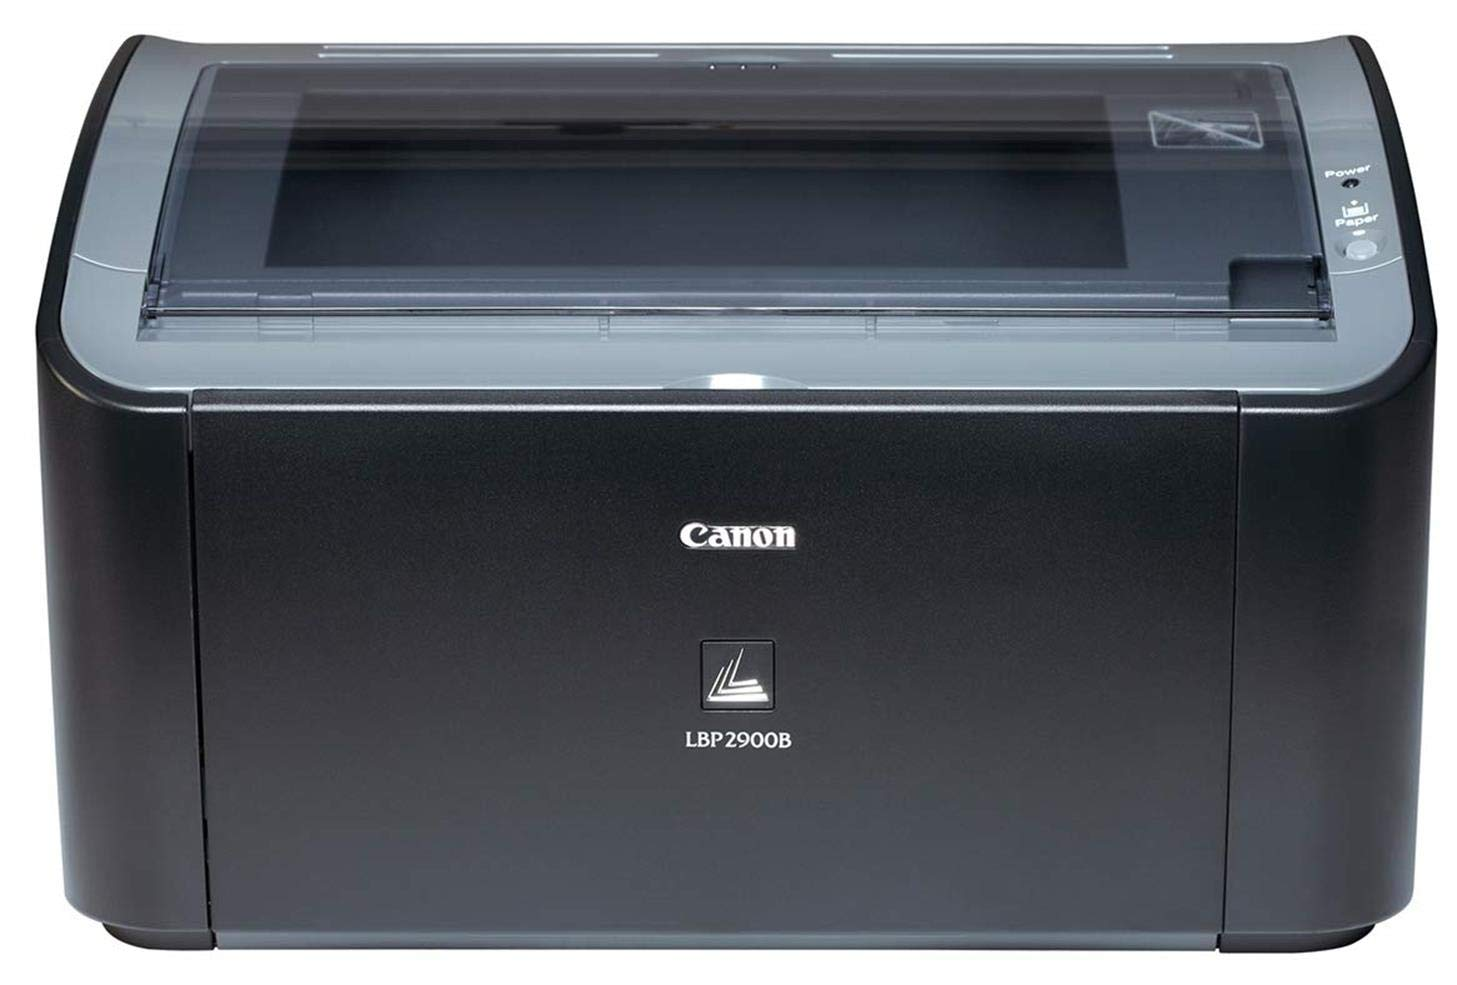 CANON PRINTER LBP2900B DRIVER FOR WINDOWS 7